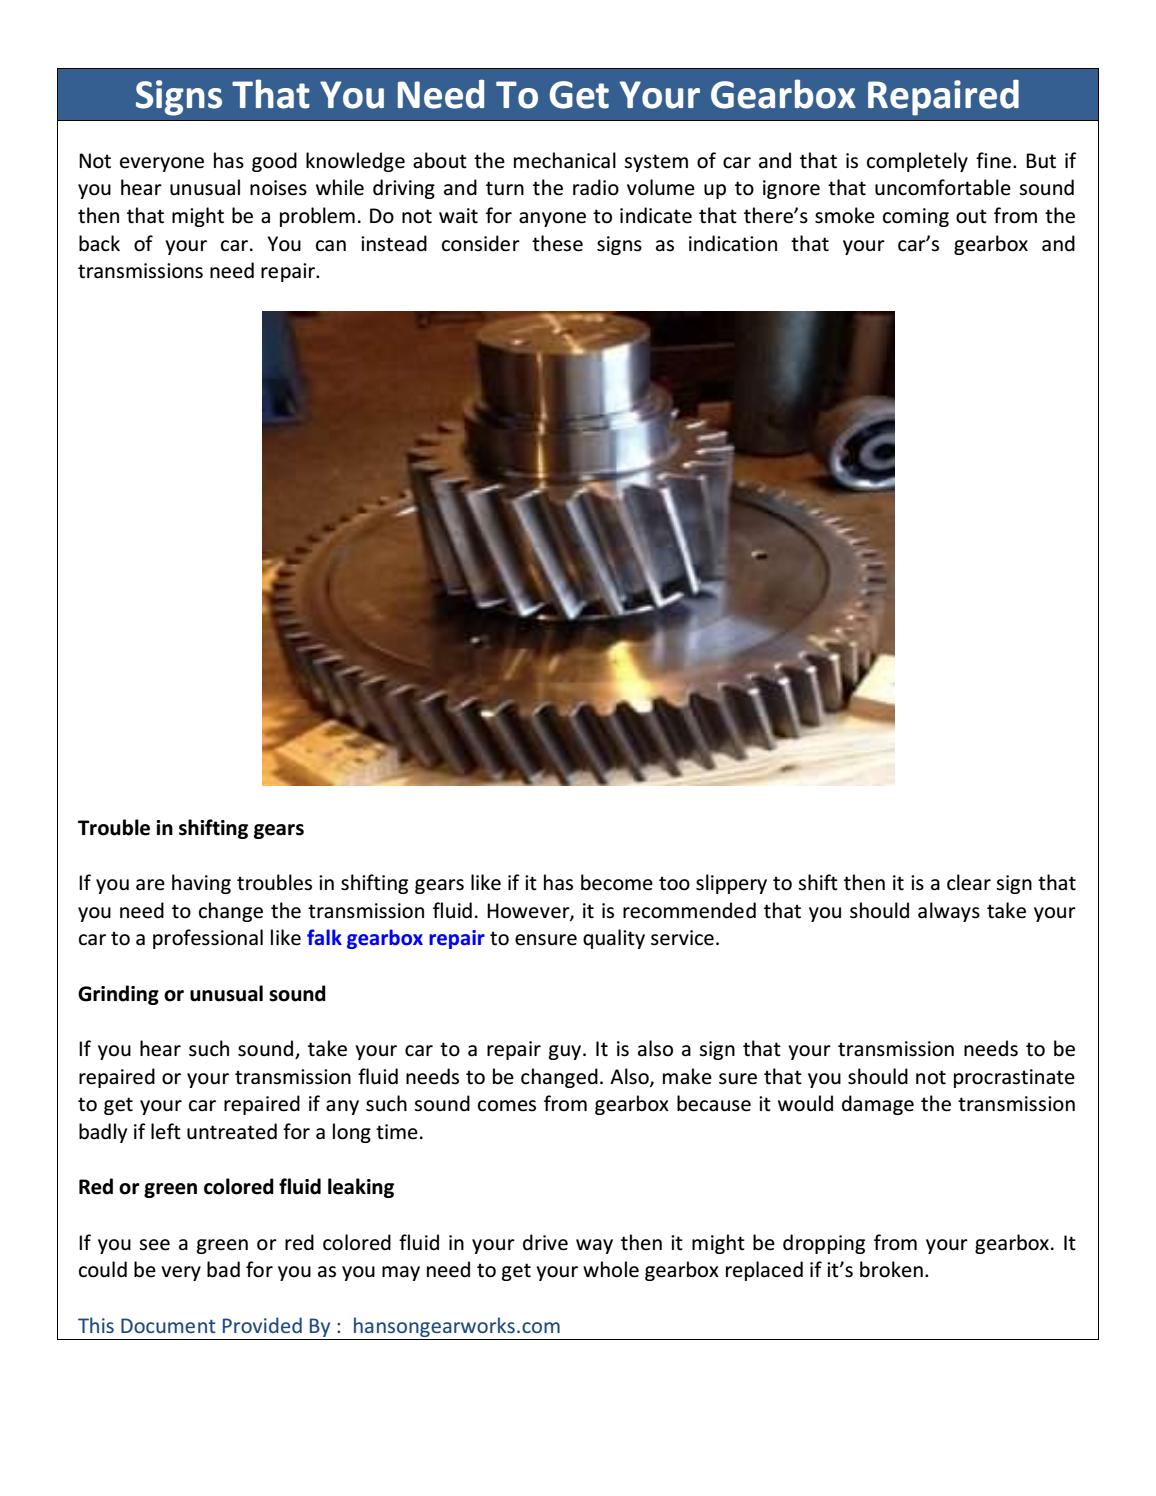 Signs That You Need To Get Your Gearbox Repaired by